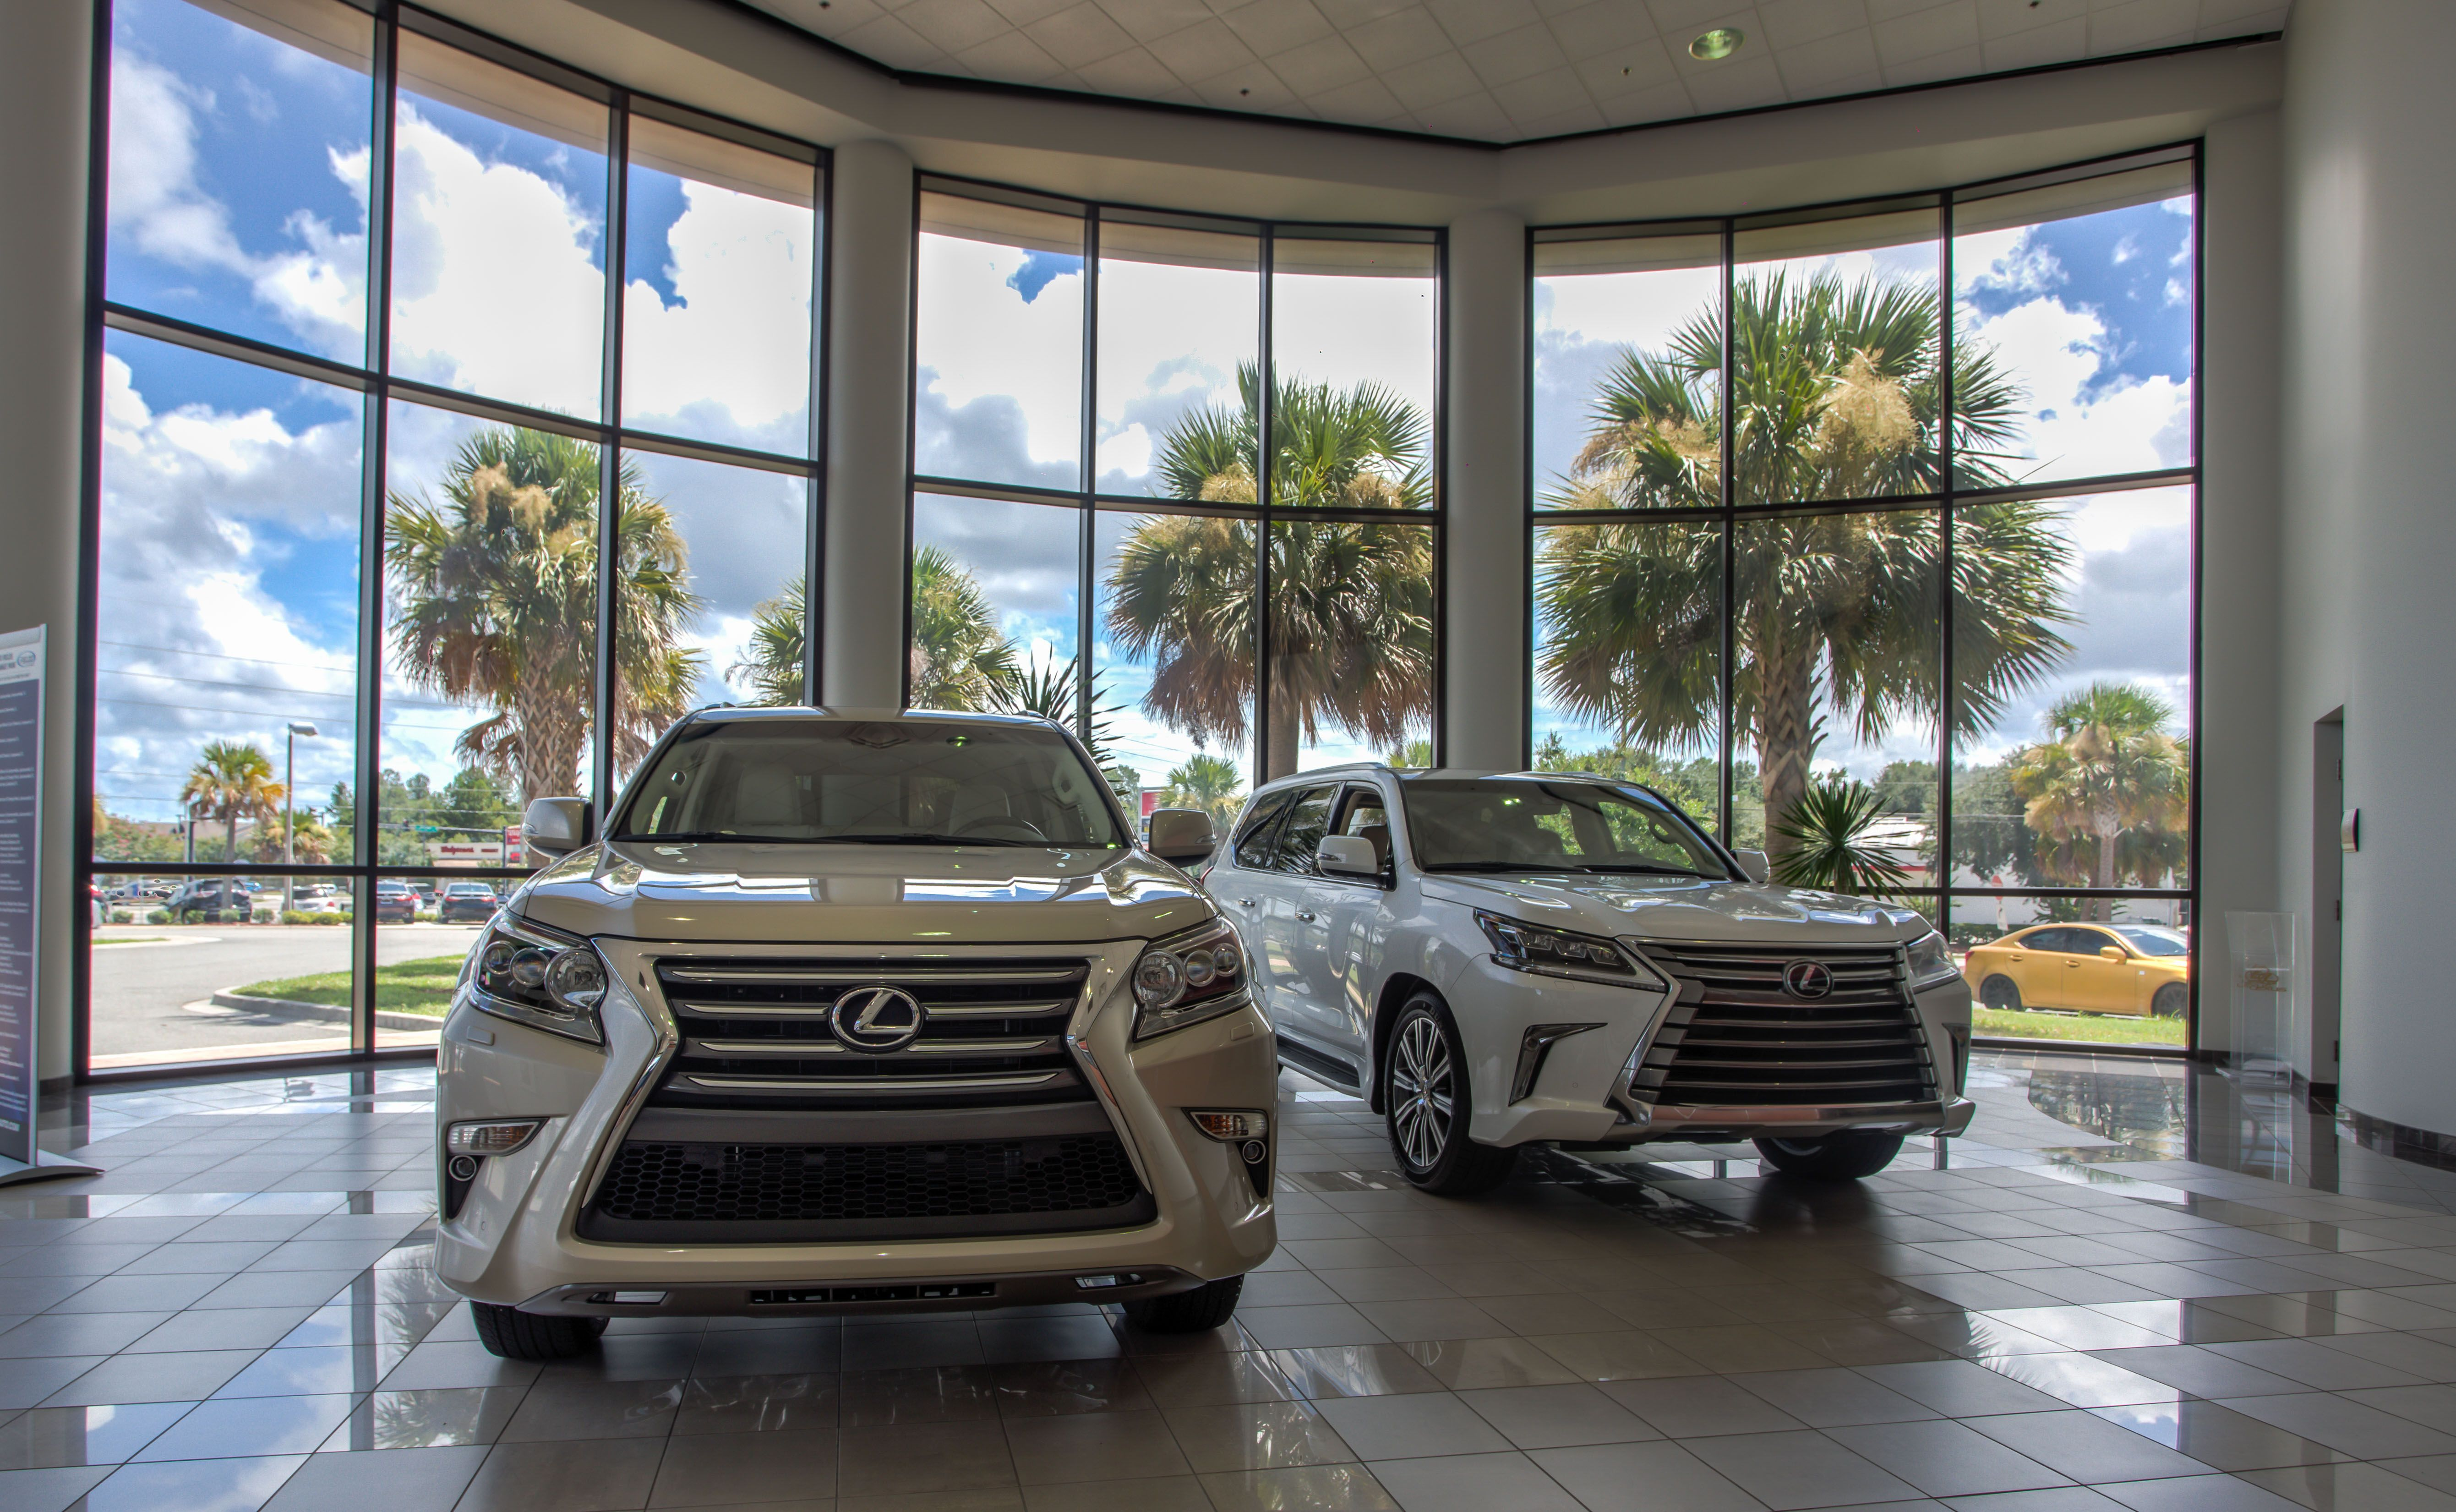 Our Mission Is To Make Every Customer A Customer For Life By Consistently Providing World Class Services Superb Custome New Lexus Lexus Dealership Orange Park